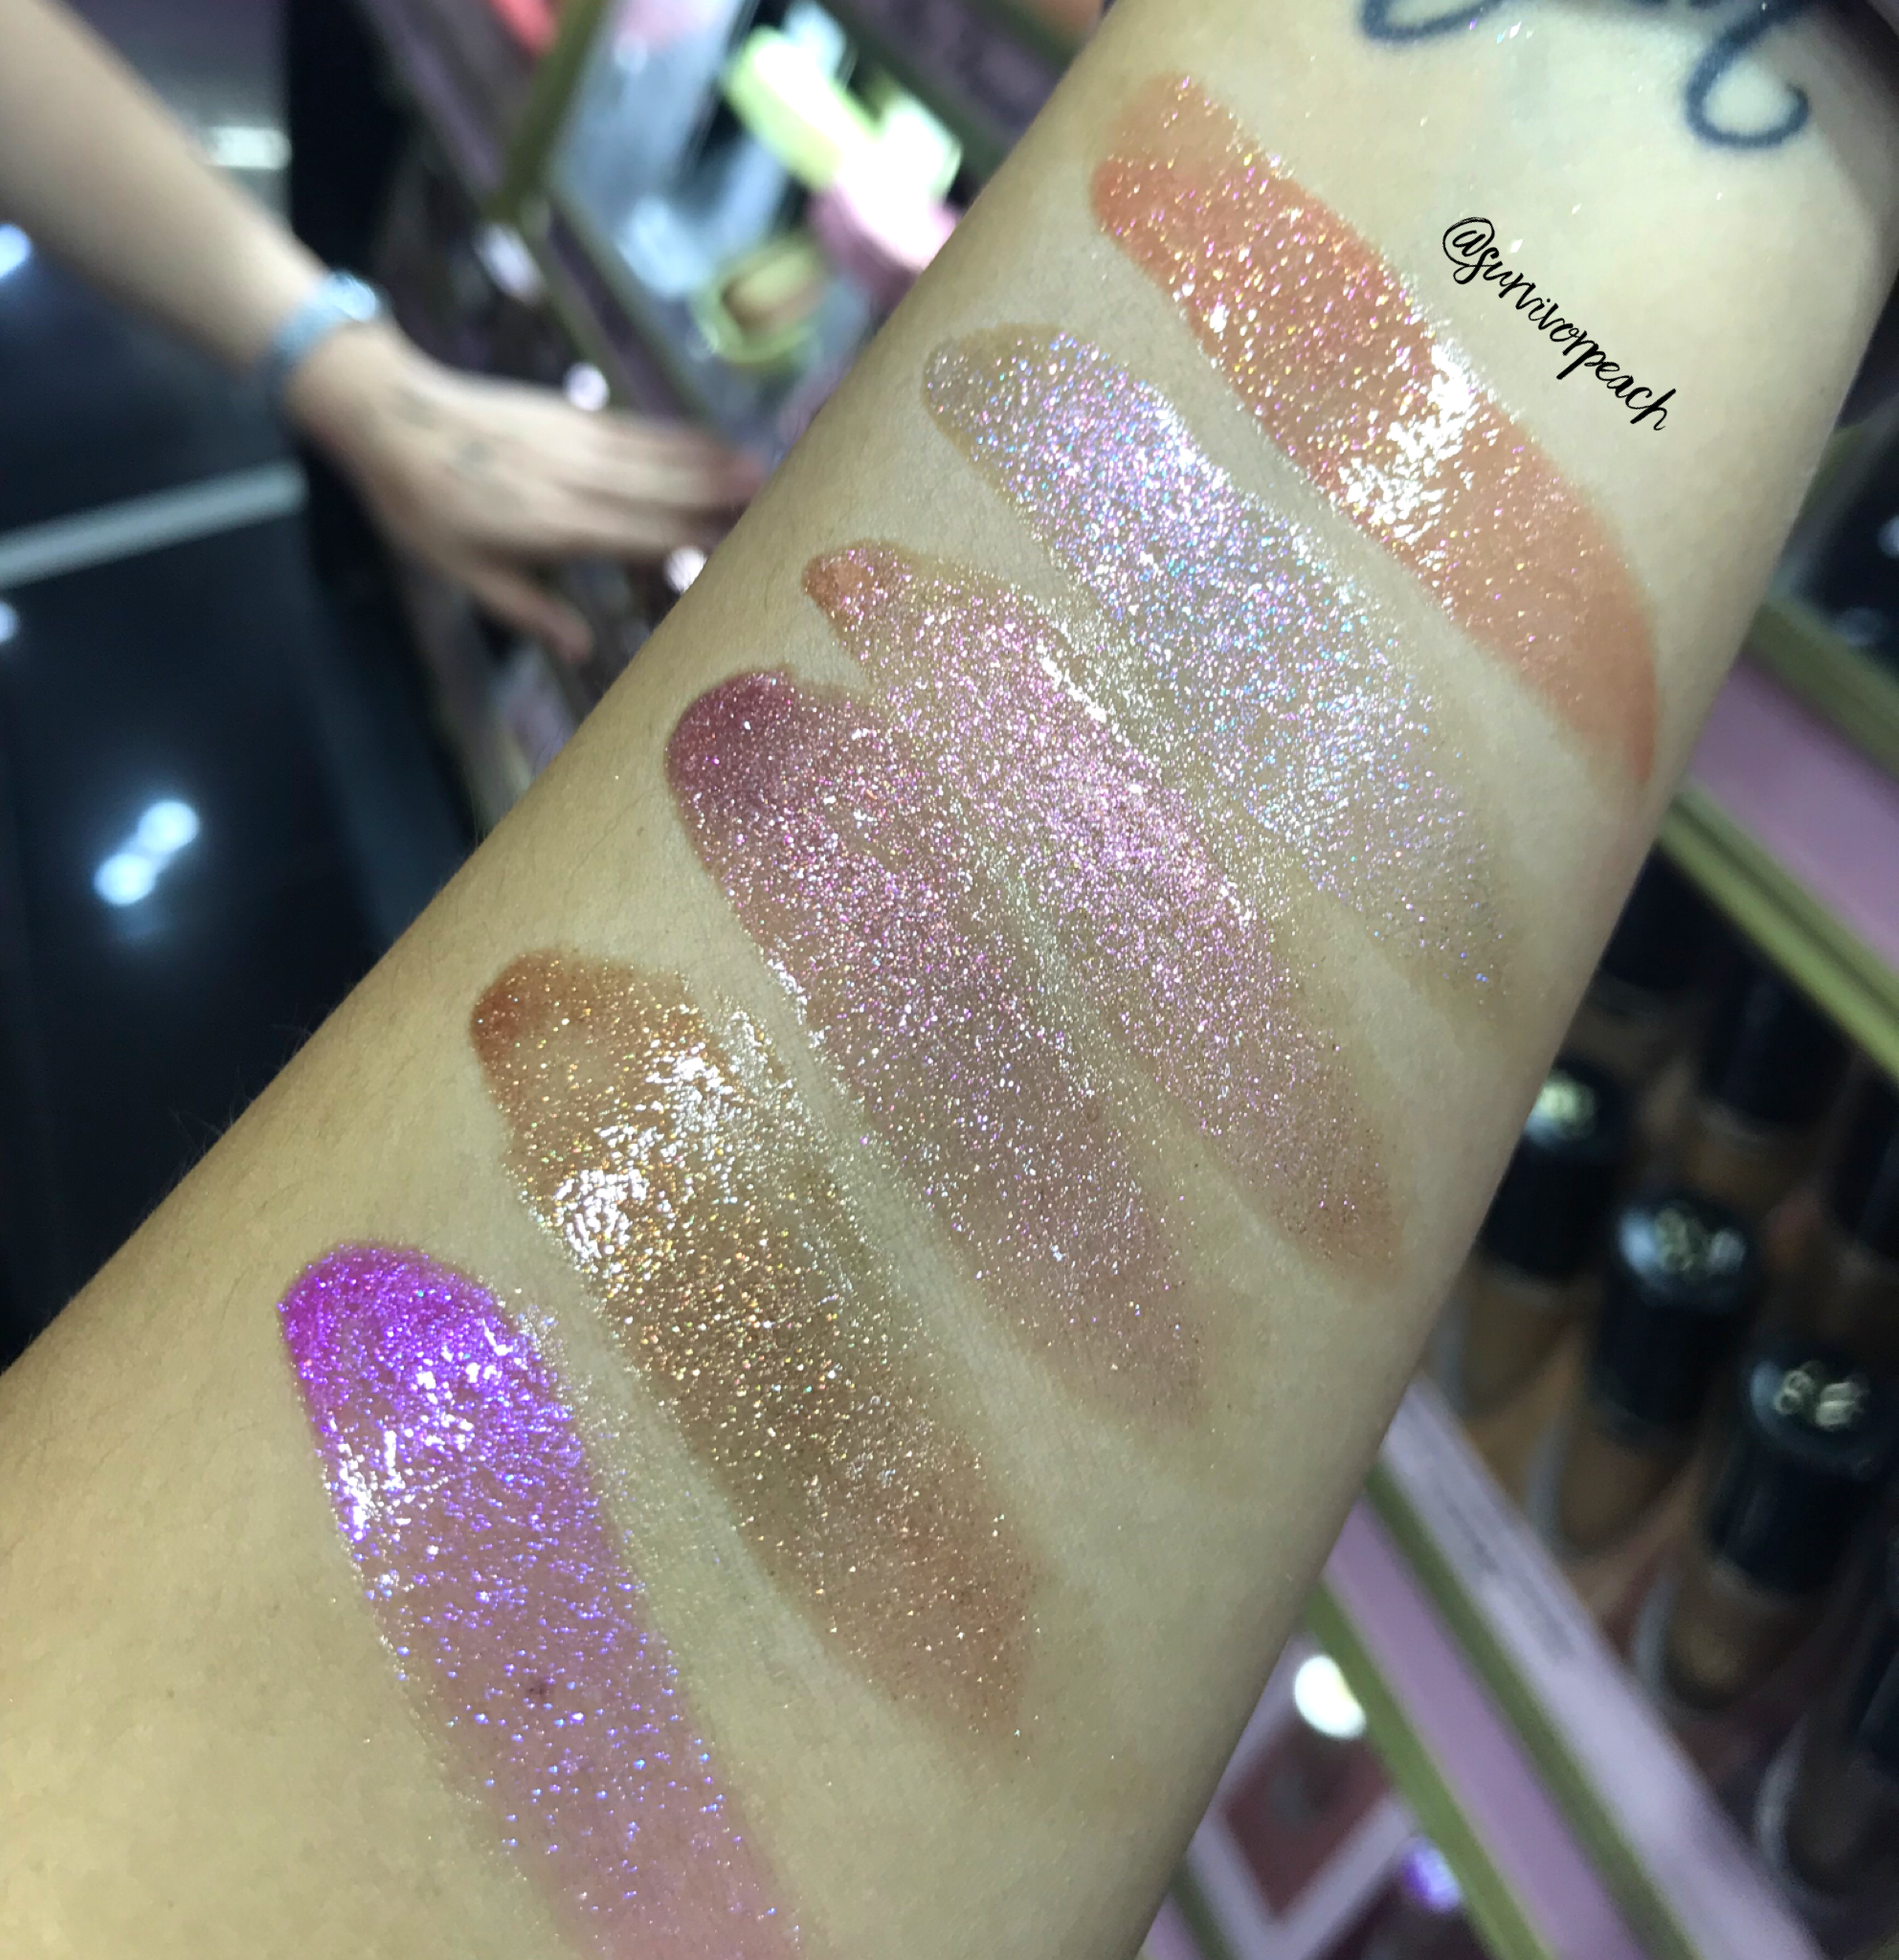 Swatches of the Toofaced Rich & Dazzling High Shine Sparkle Lip Gloss in Social Butterfly, All the Stars, Sunset Crush, Raisin the Roof, Pretty Penny, 40K